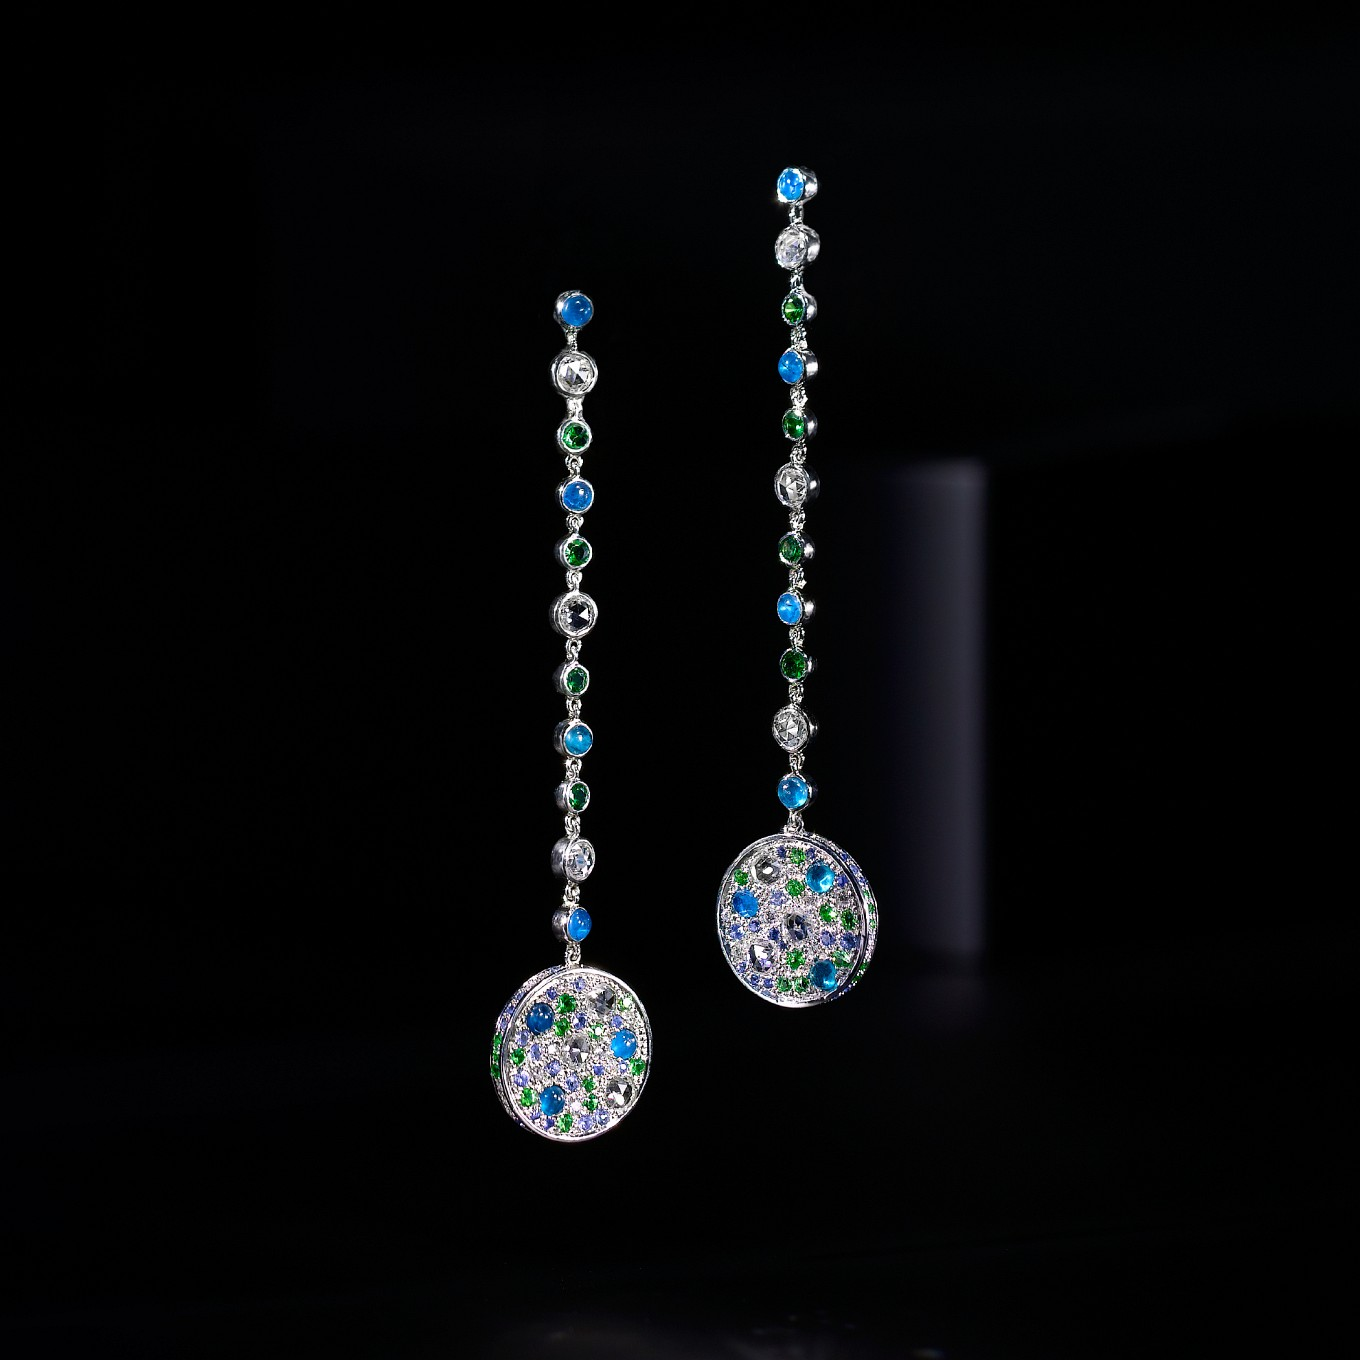 PEACOCK EARRINGS WITH ROSE CUT DIAMONDS, APATITE CABOCHONS, BLUE SAPPHIRES & TSAVORITE GARNETS